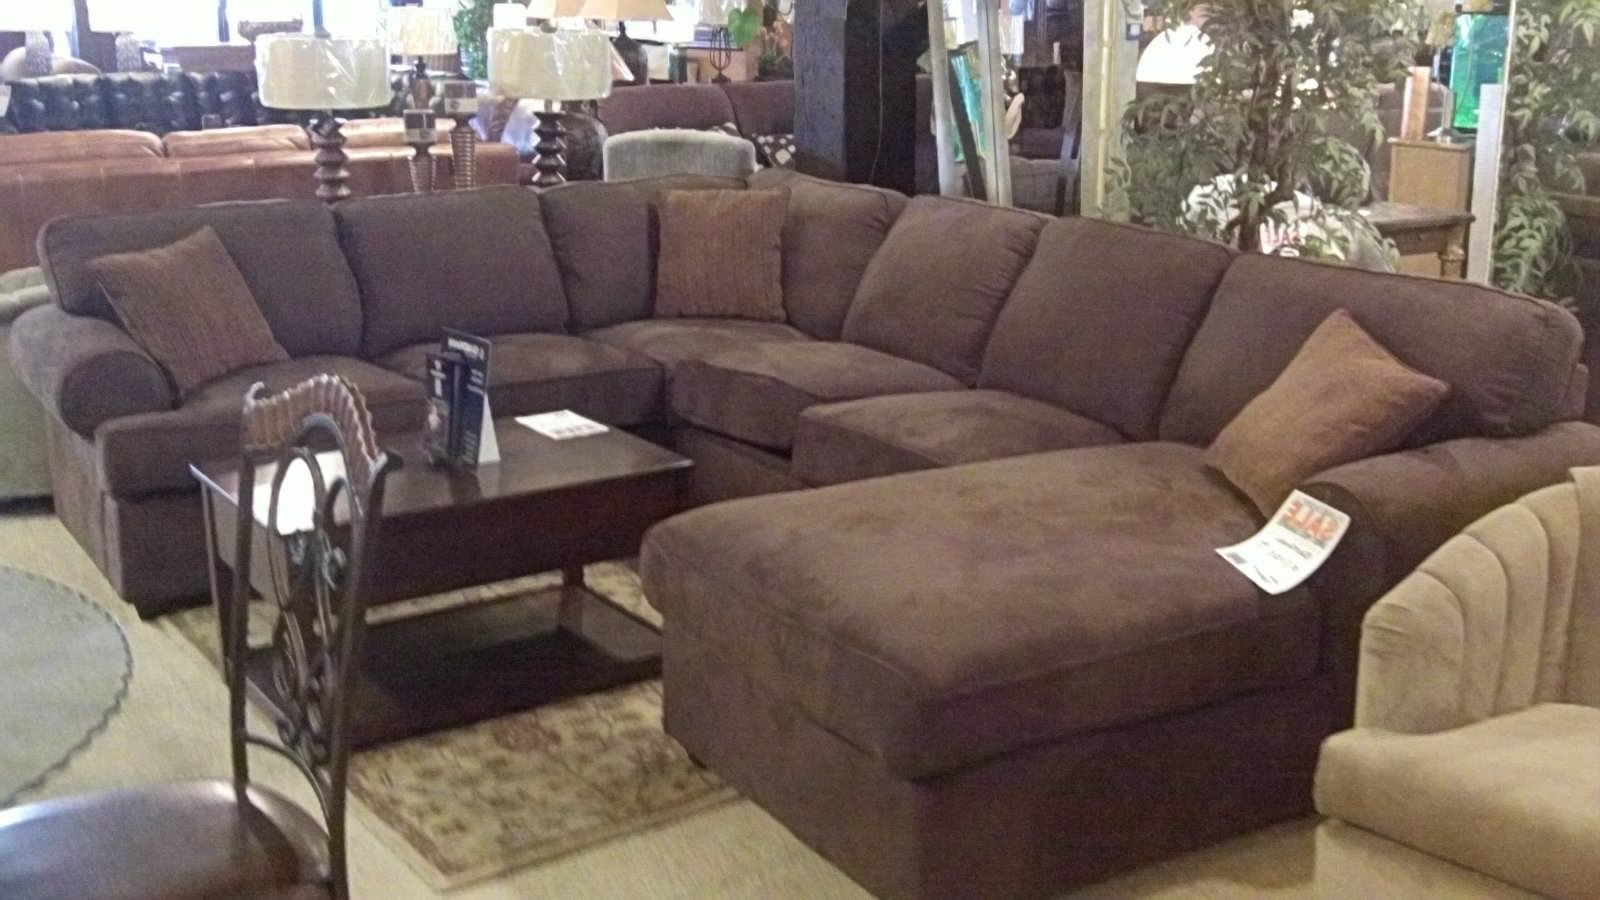 Sectional Sofas With Oversized Ottoman Throughout Favorite Sectional Sofa Design: Oversized Sectional Sofas Recliners Sale (View 17 of 20)